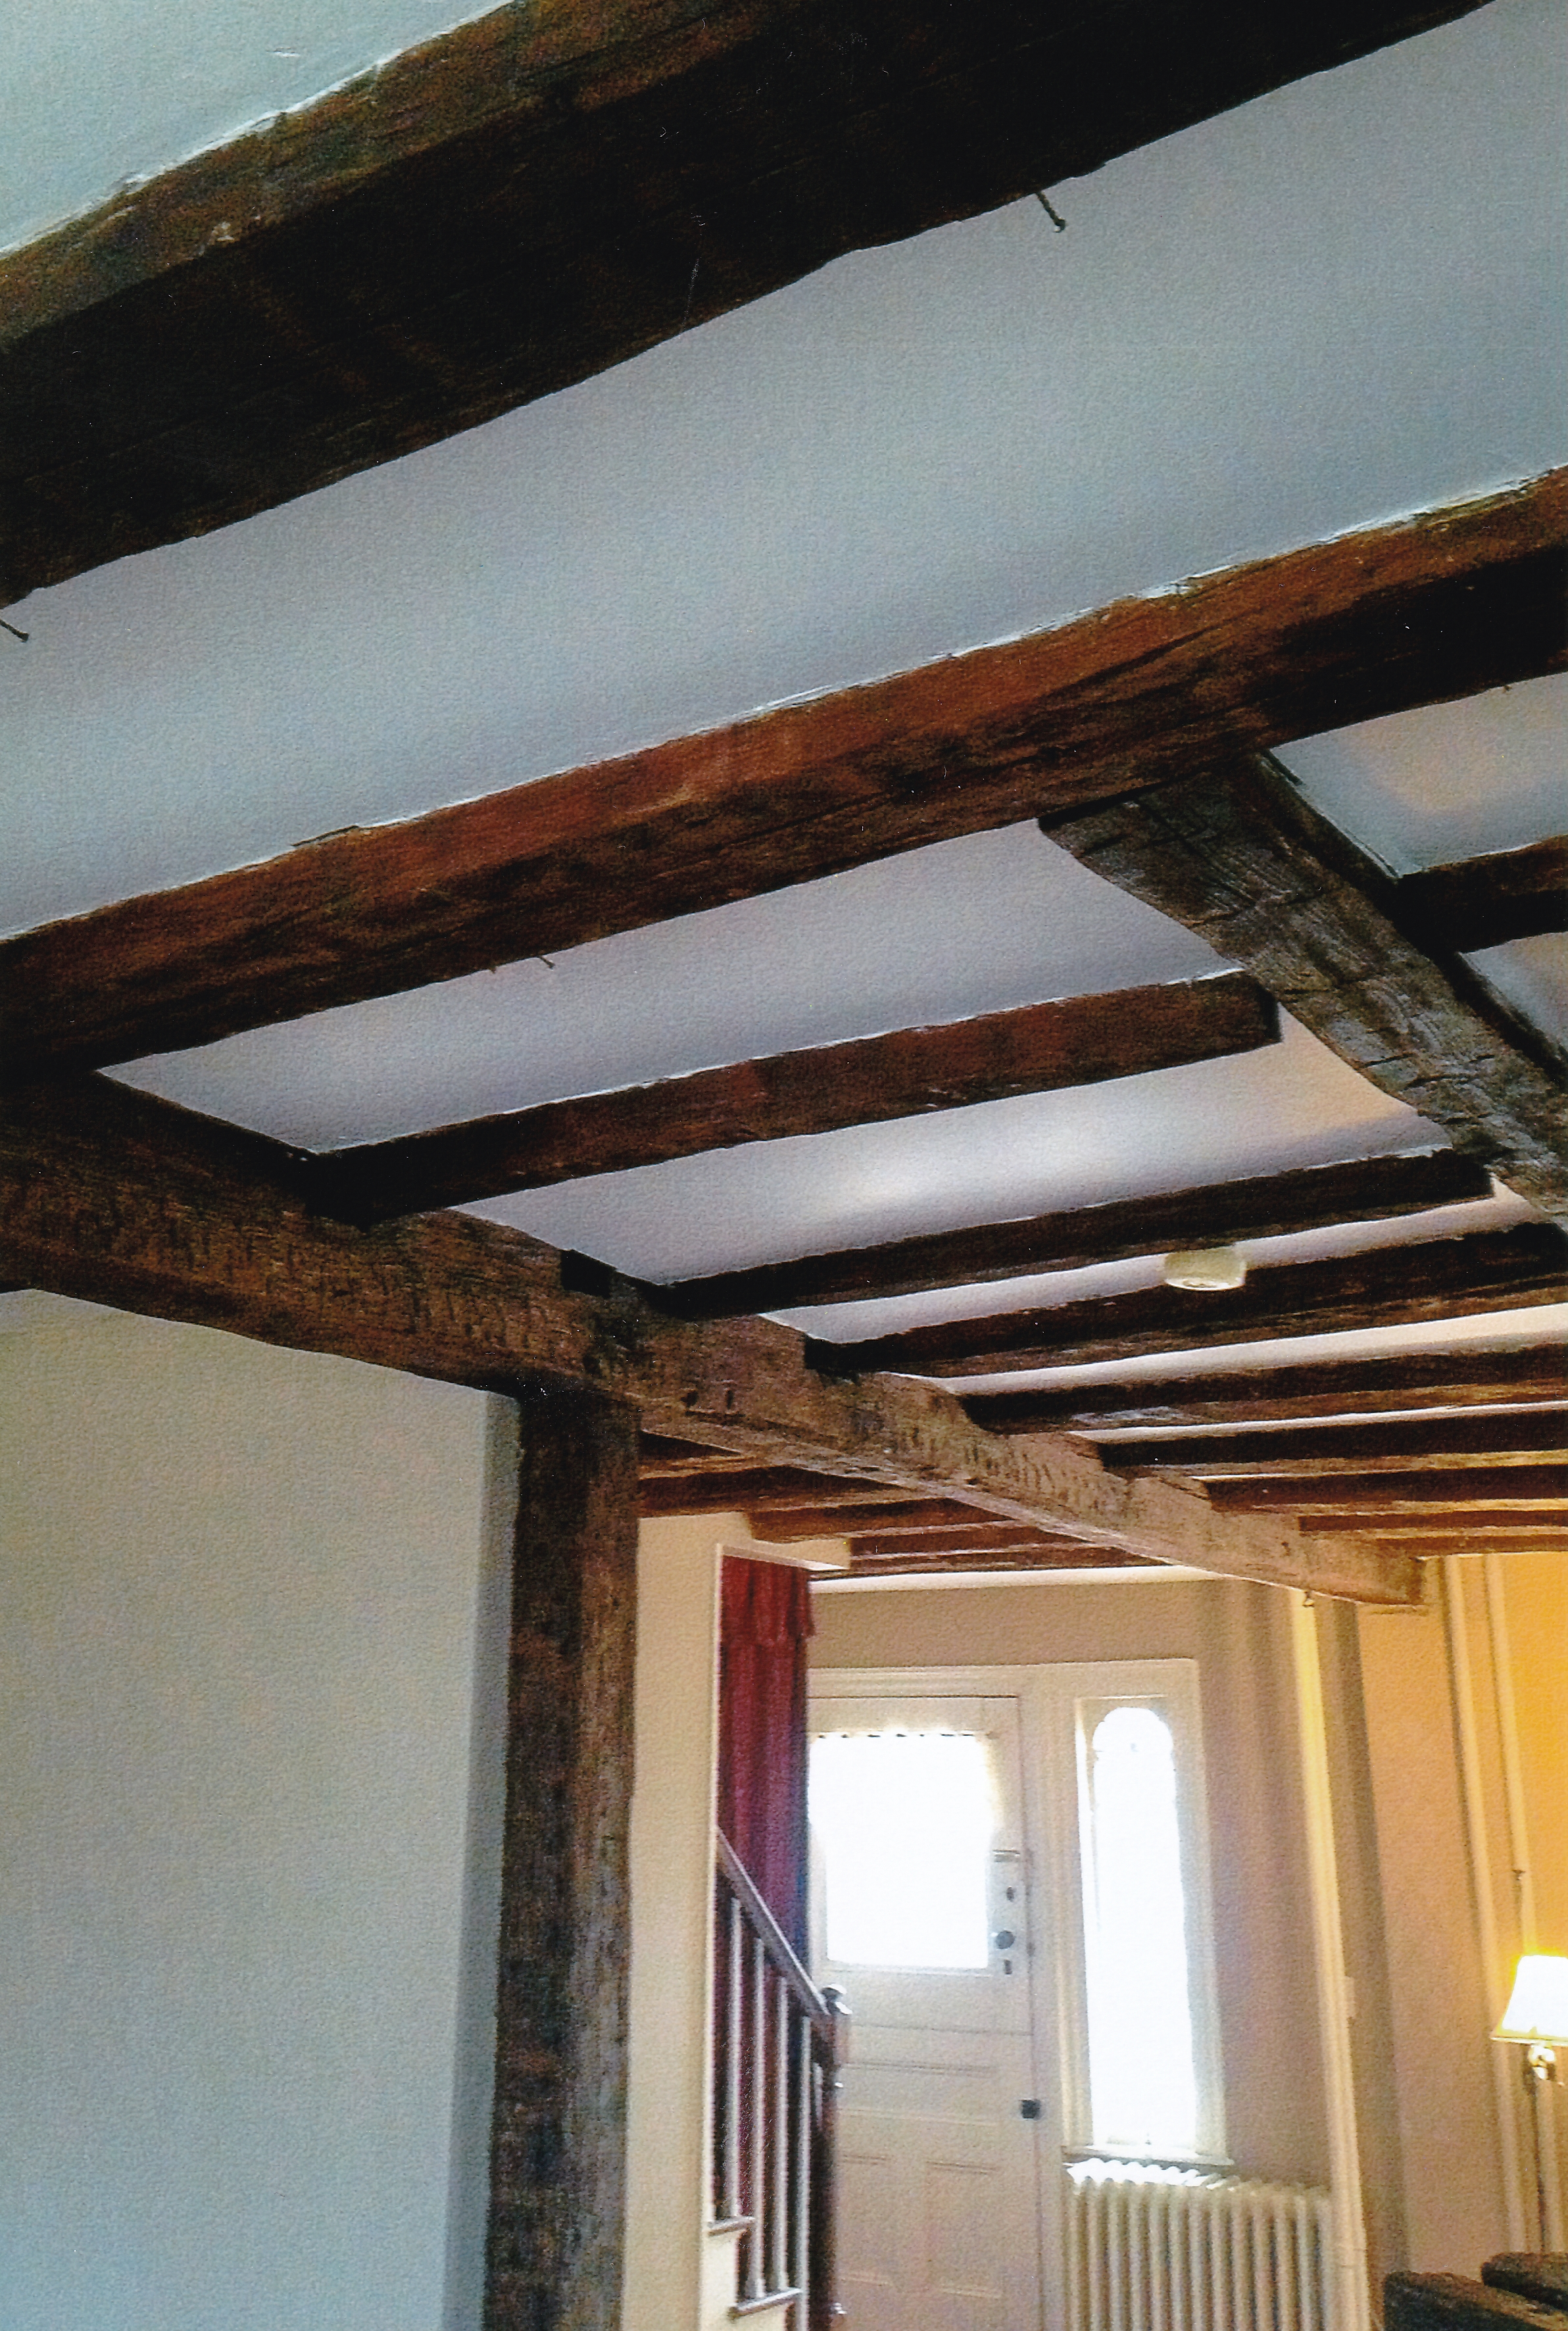 Trumbull House - 2018 - Beams going to front of house and front door